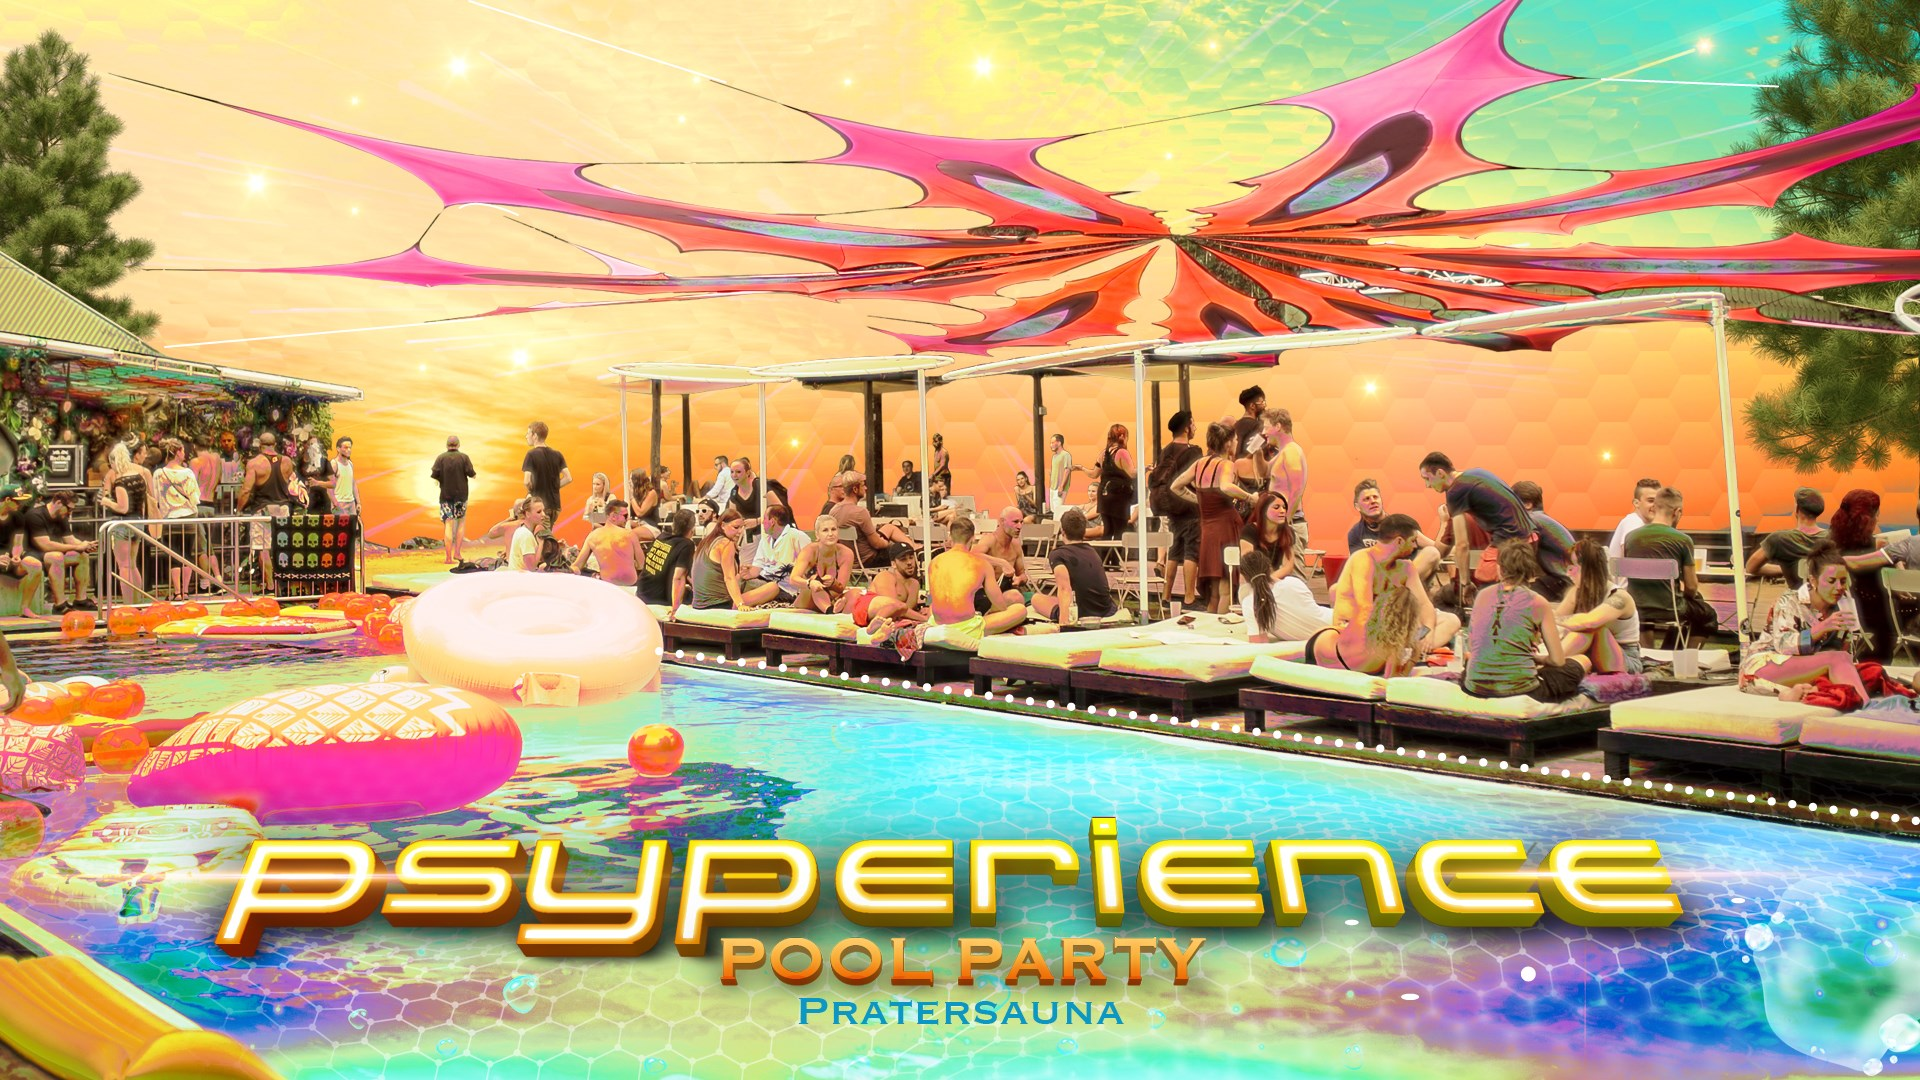 Events Wien: Psyperience Daytime Pool Party